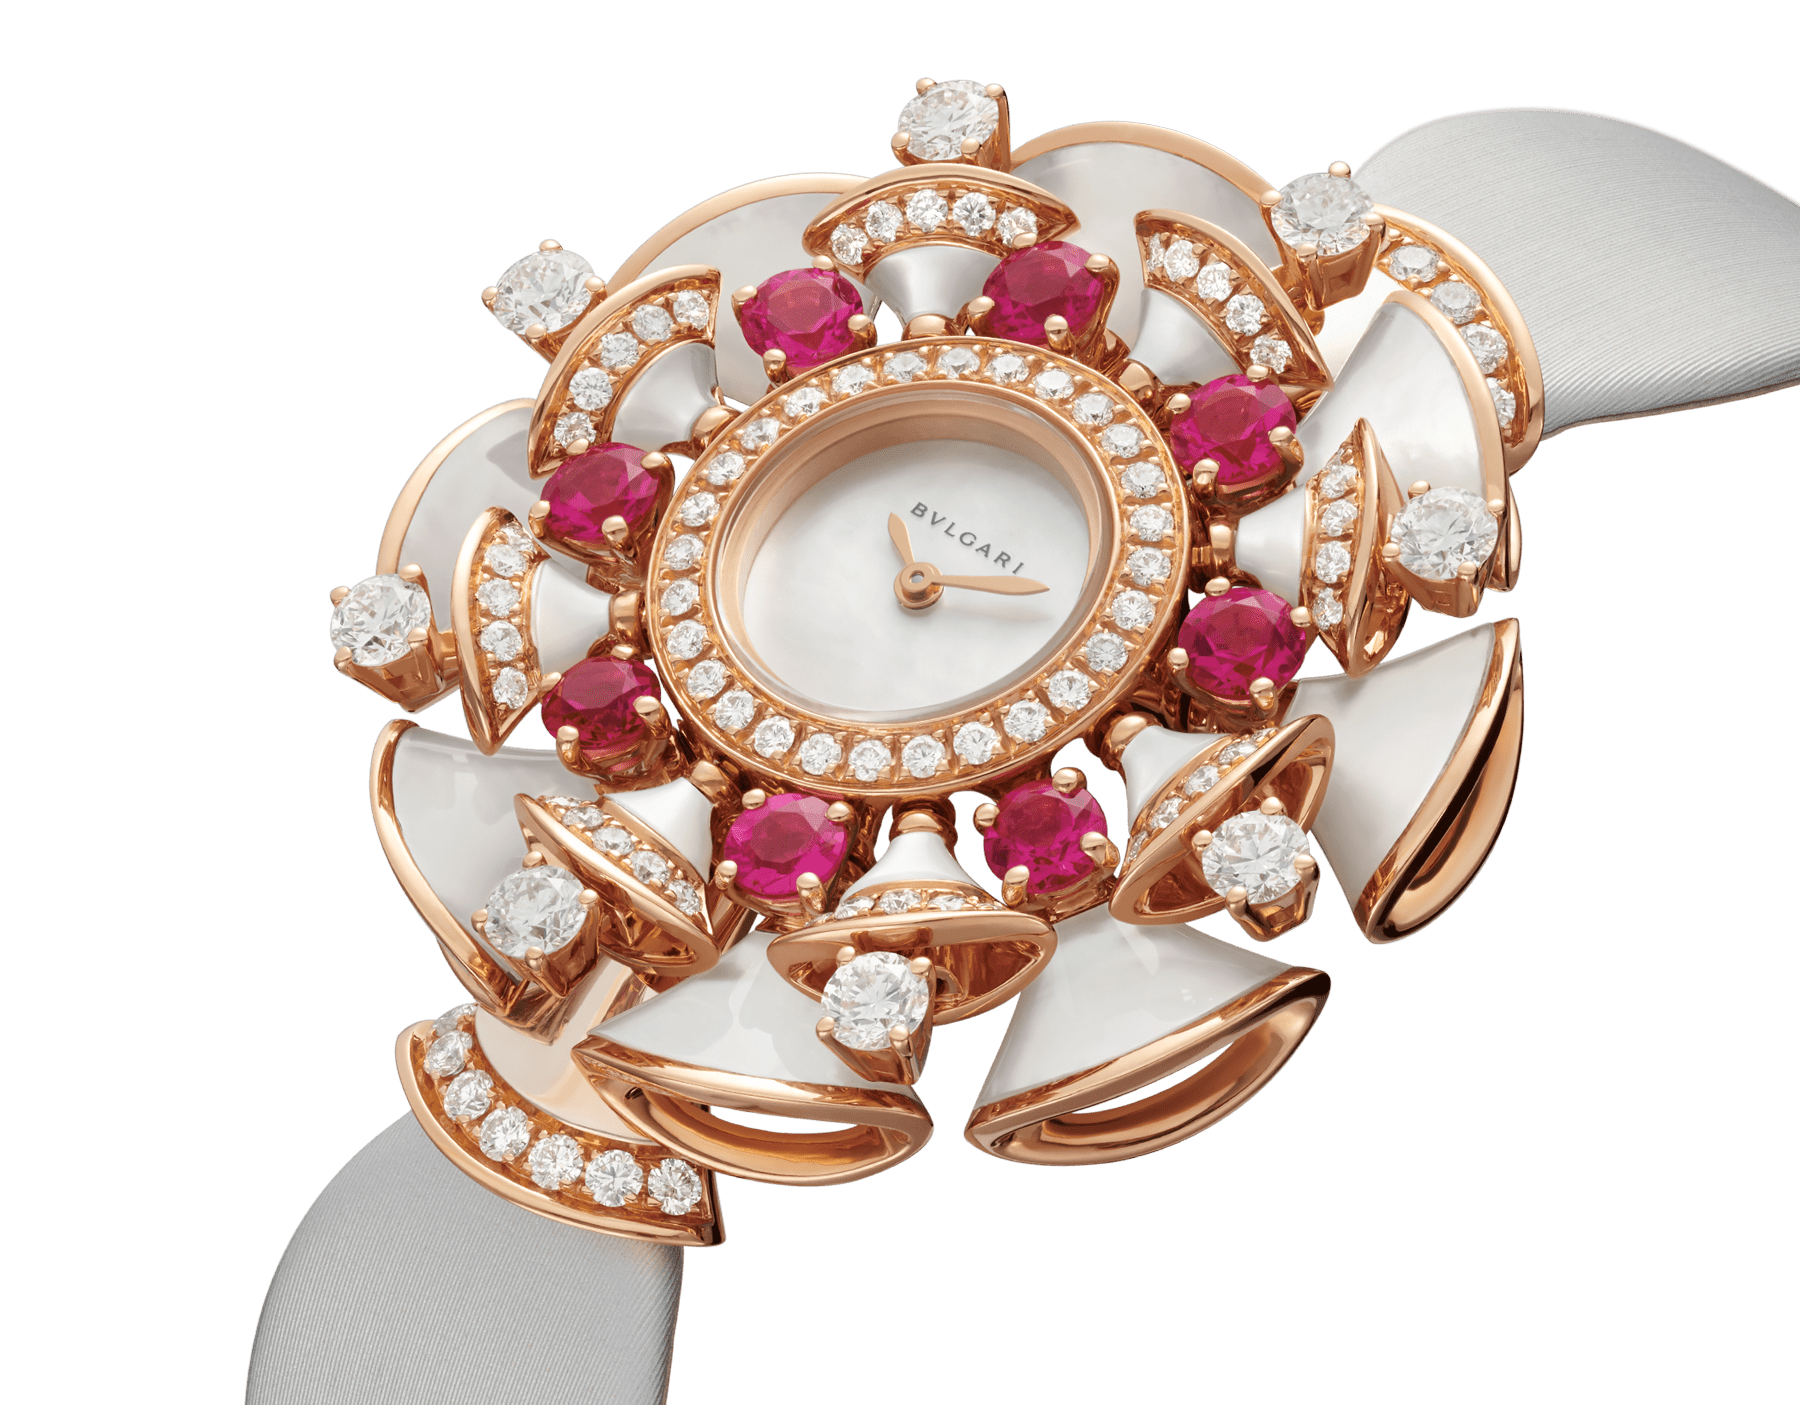 DIVAS' DREAM watch with 18 kt rose gold case set with brilliant and round-cut diamonds, round-cut rubellites and mother-of-pearl elements, white mother-of-pearl dial and grey satin bracelet 102218 image 2